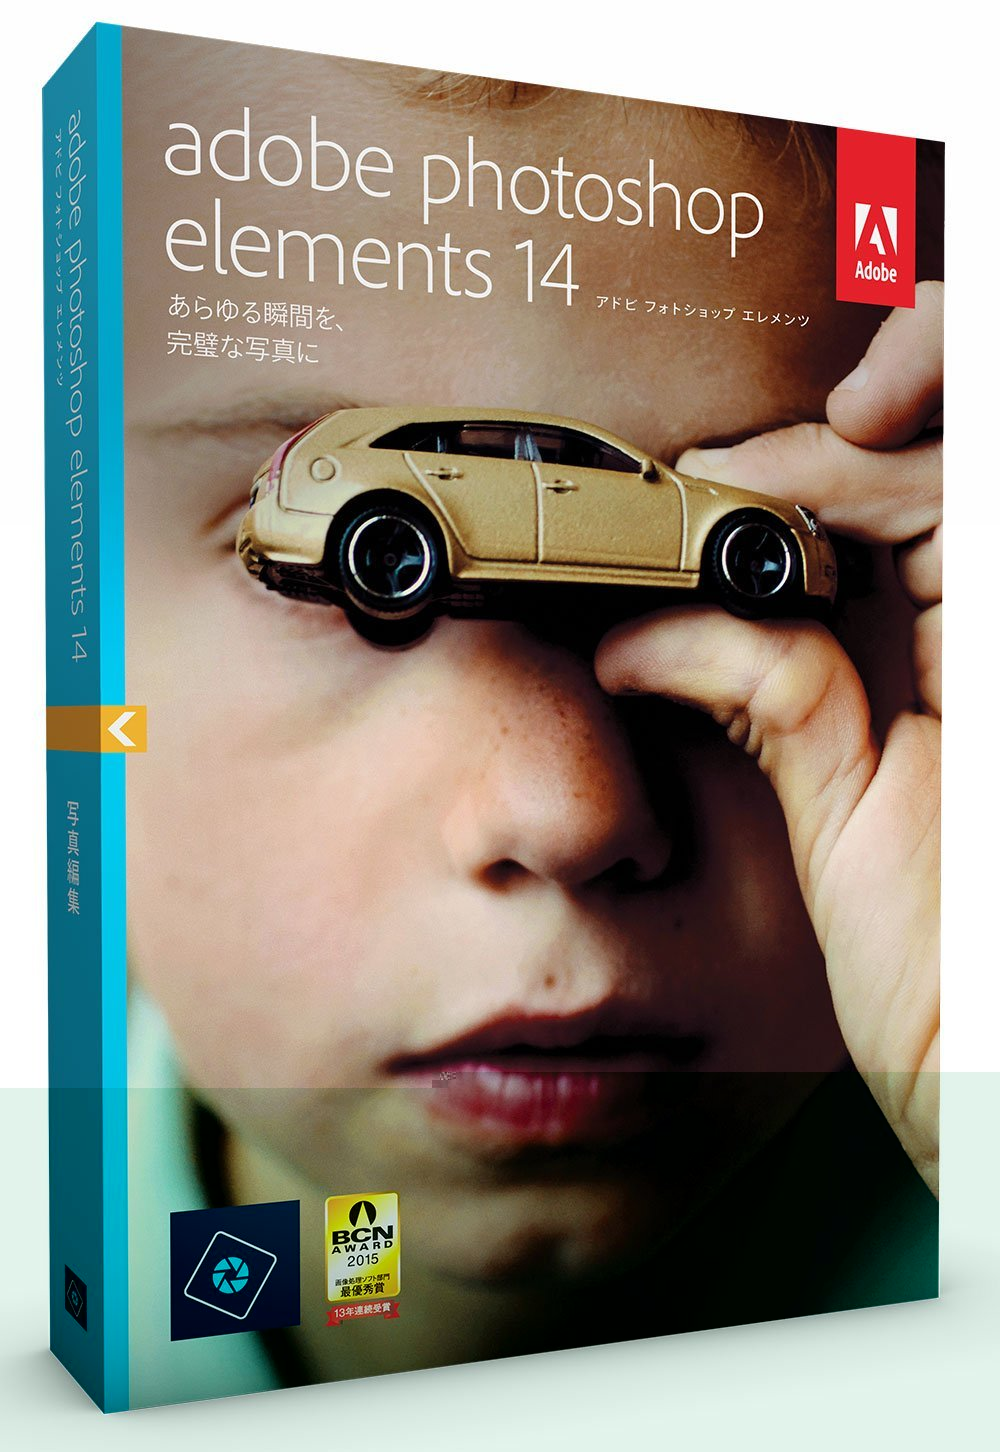 Adobe Photoshop Elements 14 Windows/Macintosh版